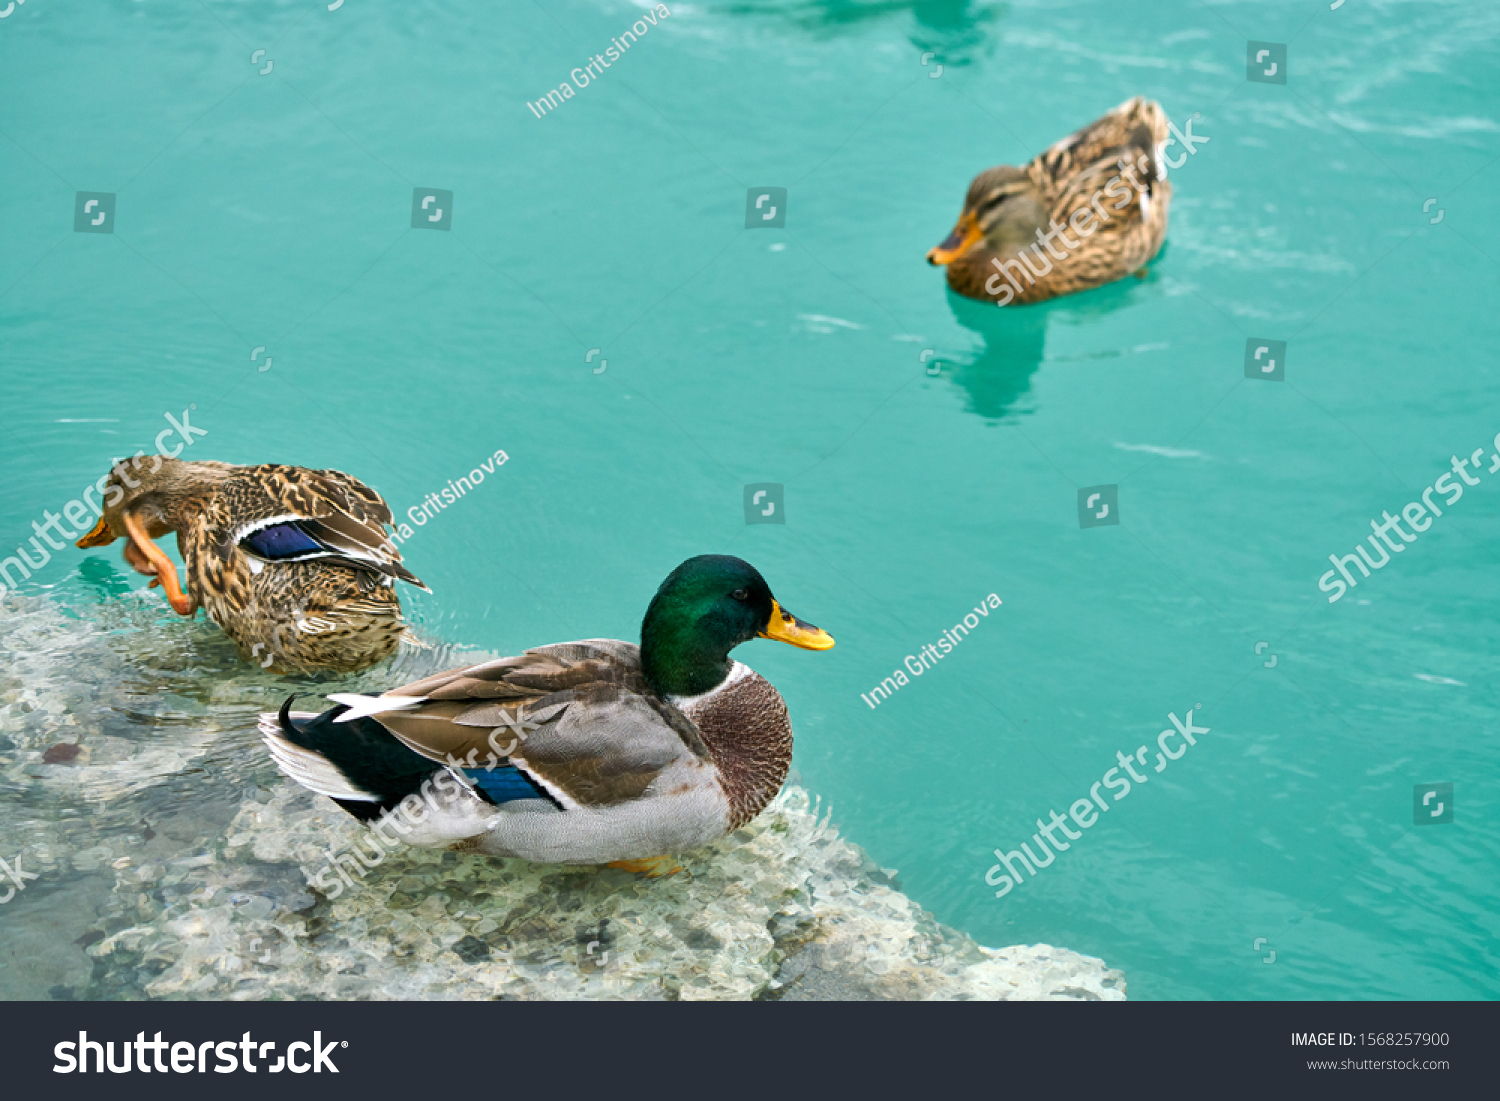 Ducks on water. Floating ducks. Pond/river/lake. Birds on water. Montenegro, Cievna river